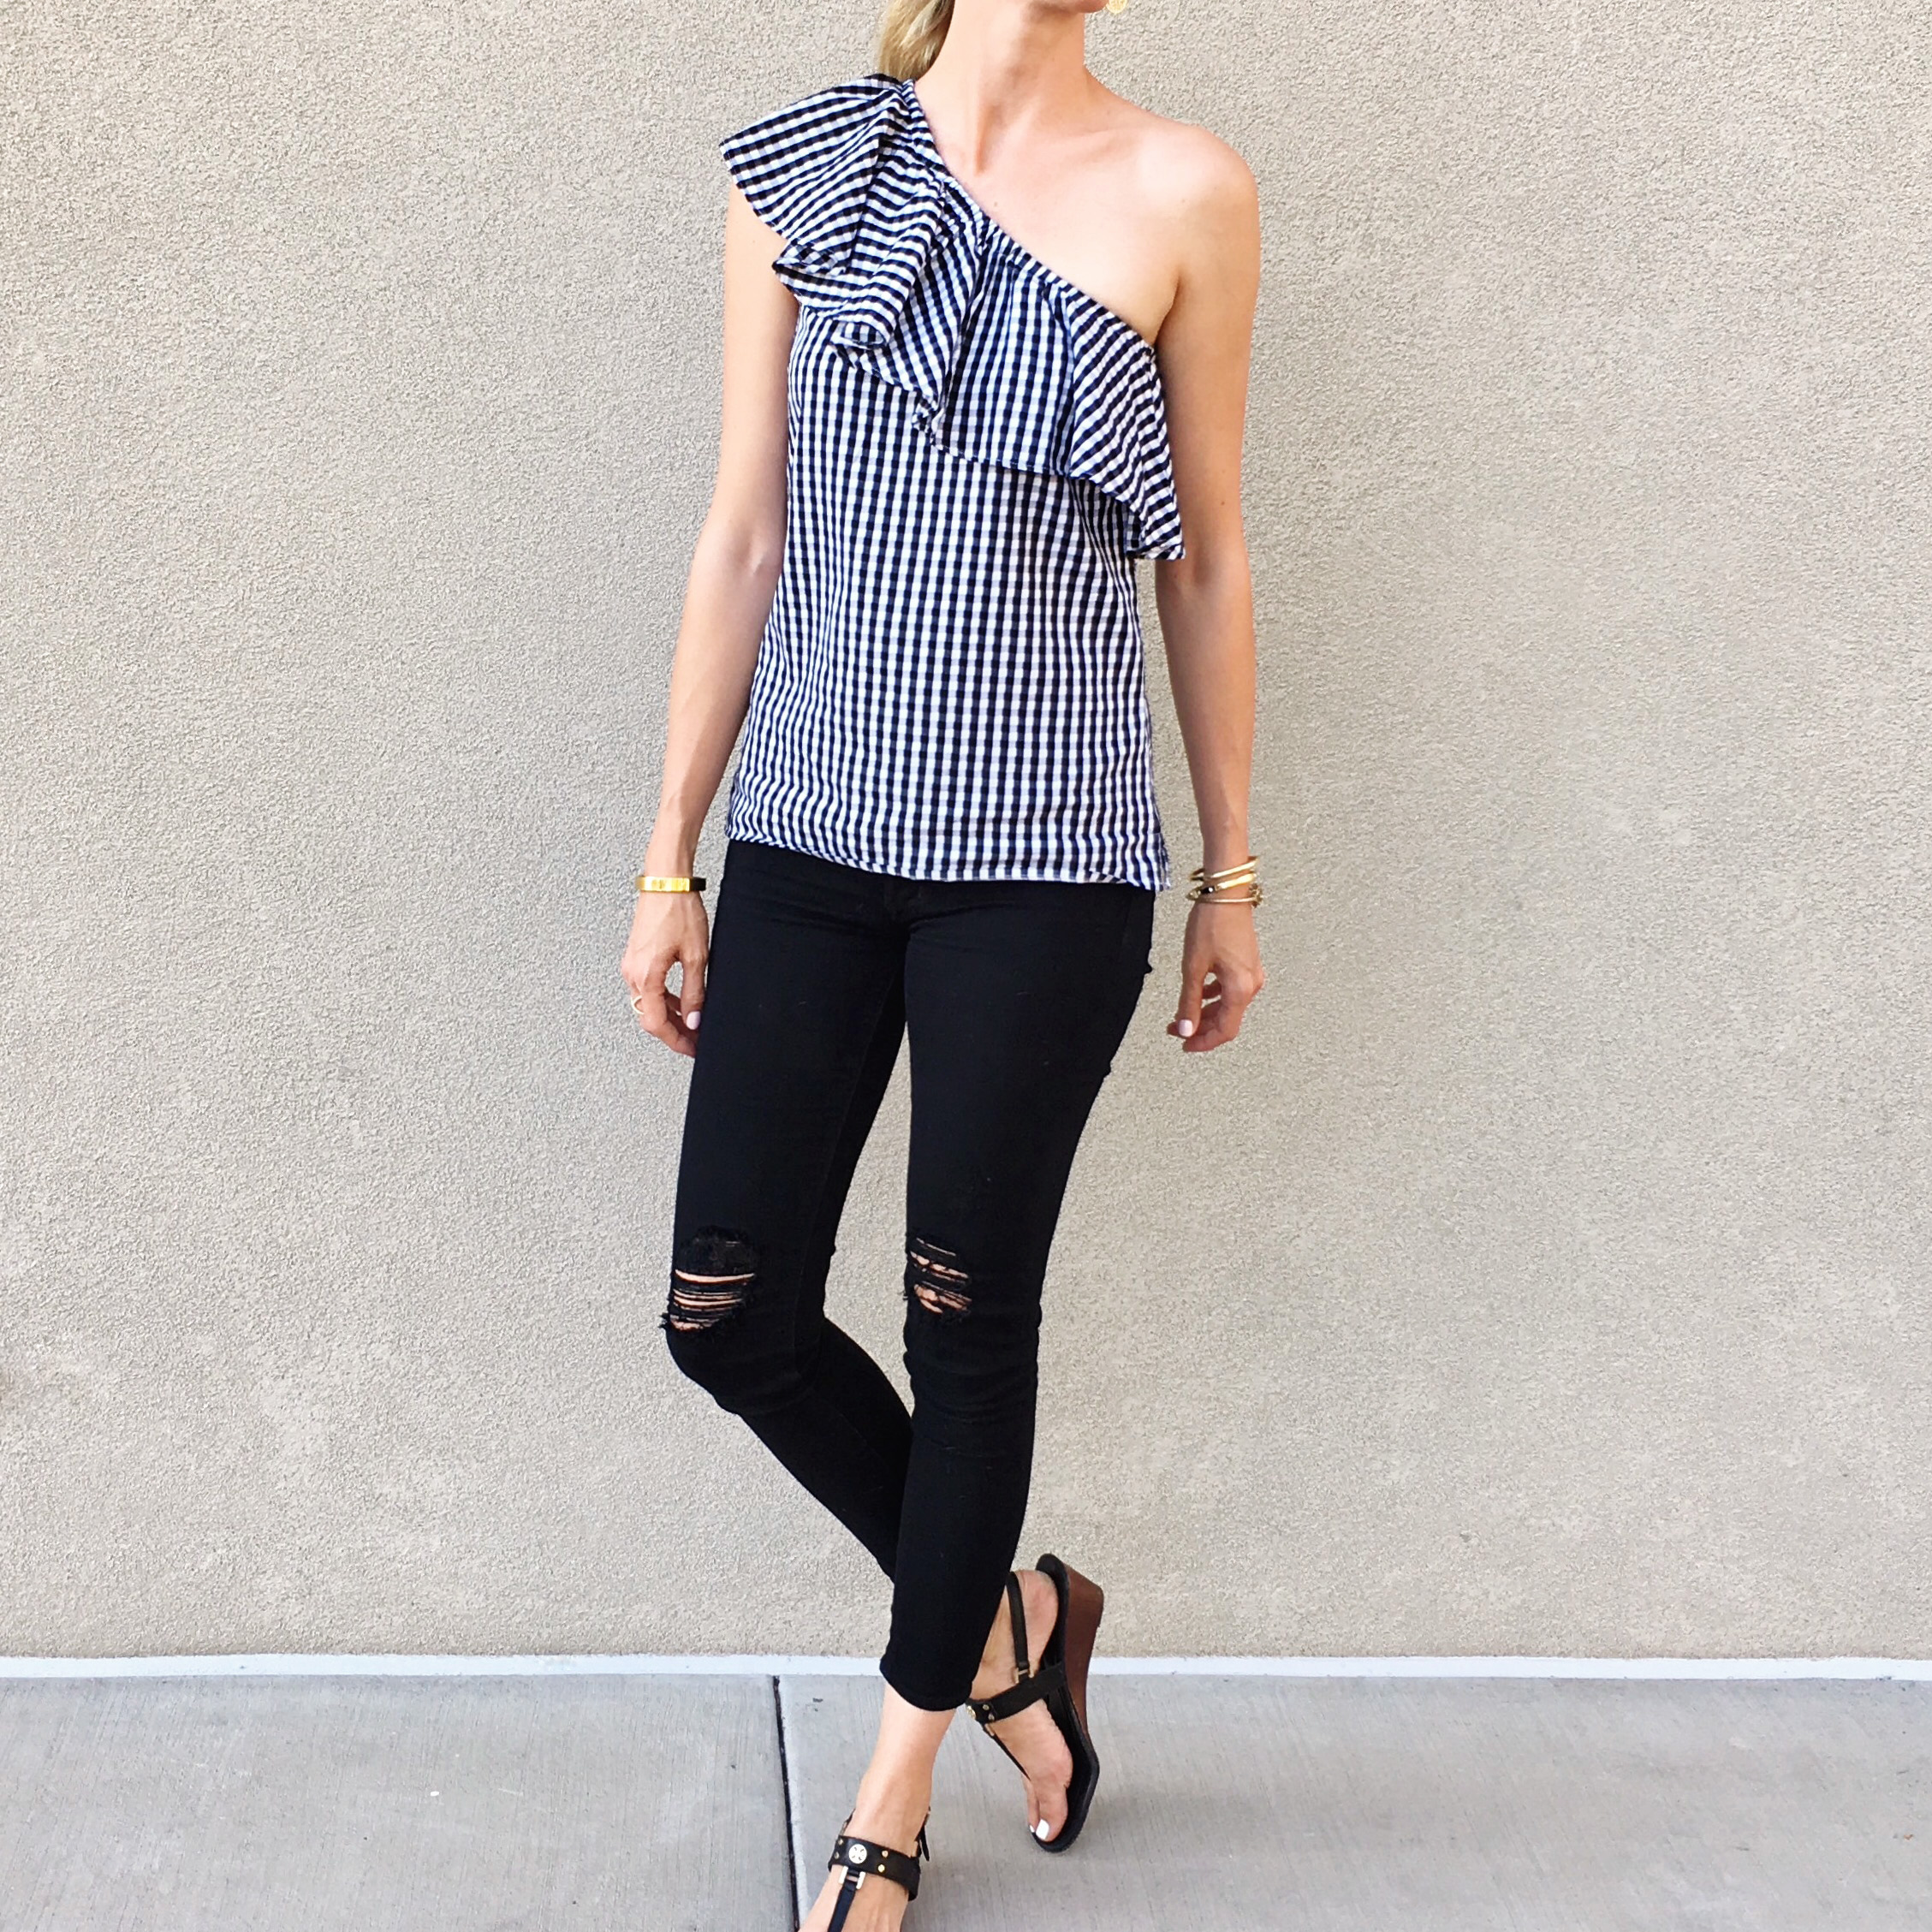 5209c69cbc2 One Shoulder Gingham Tops — With Love and Style